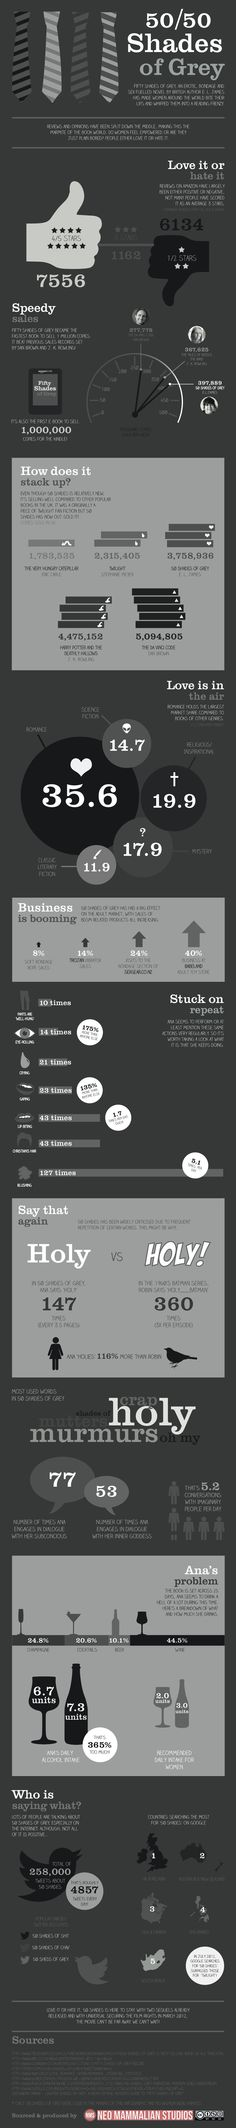 Less known shades of Fifty Shades of Grey (infographic) | #reading